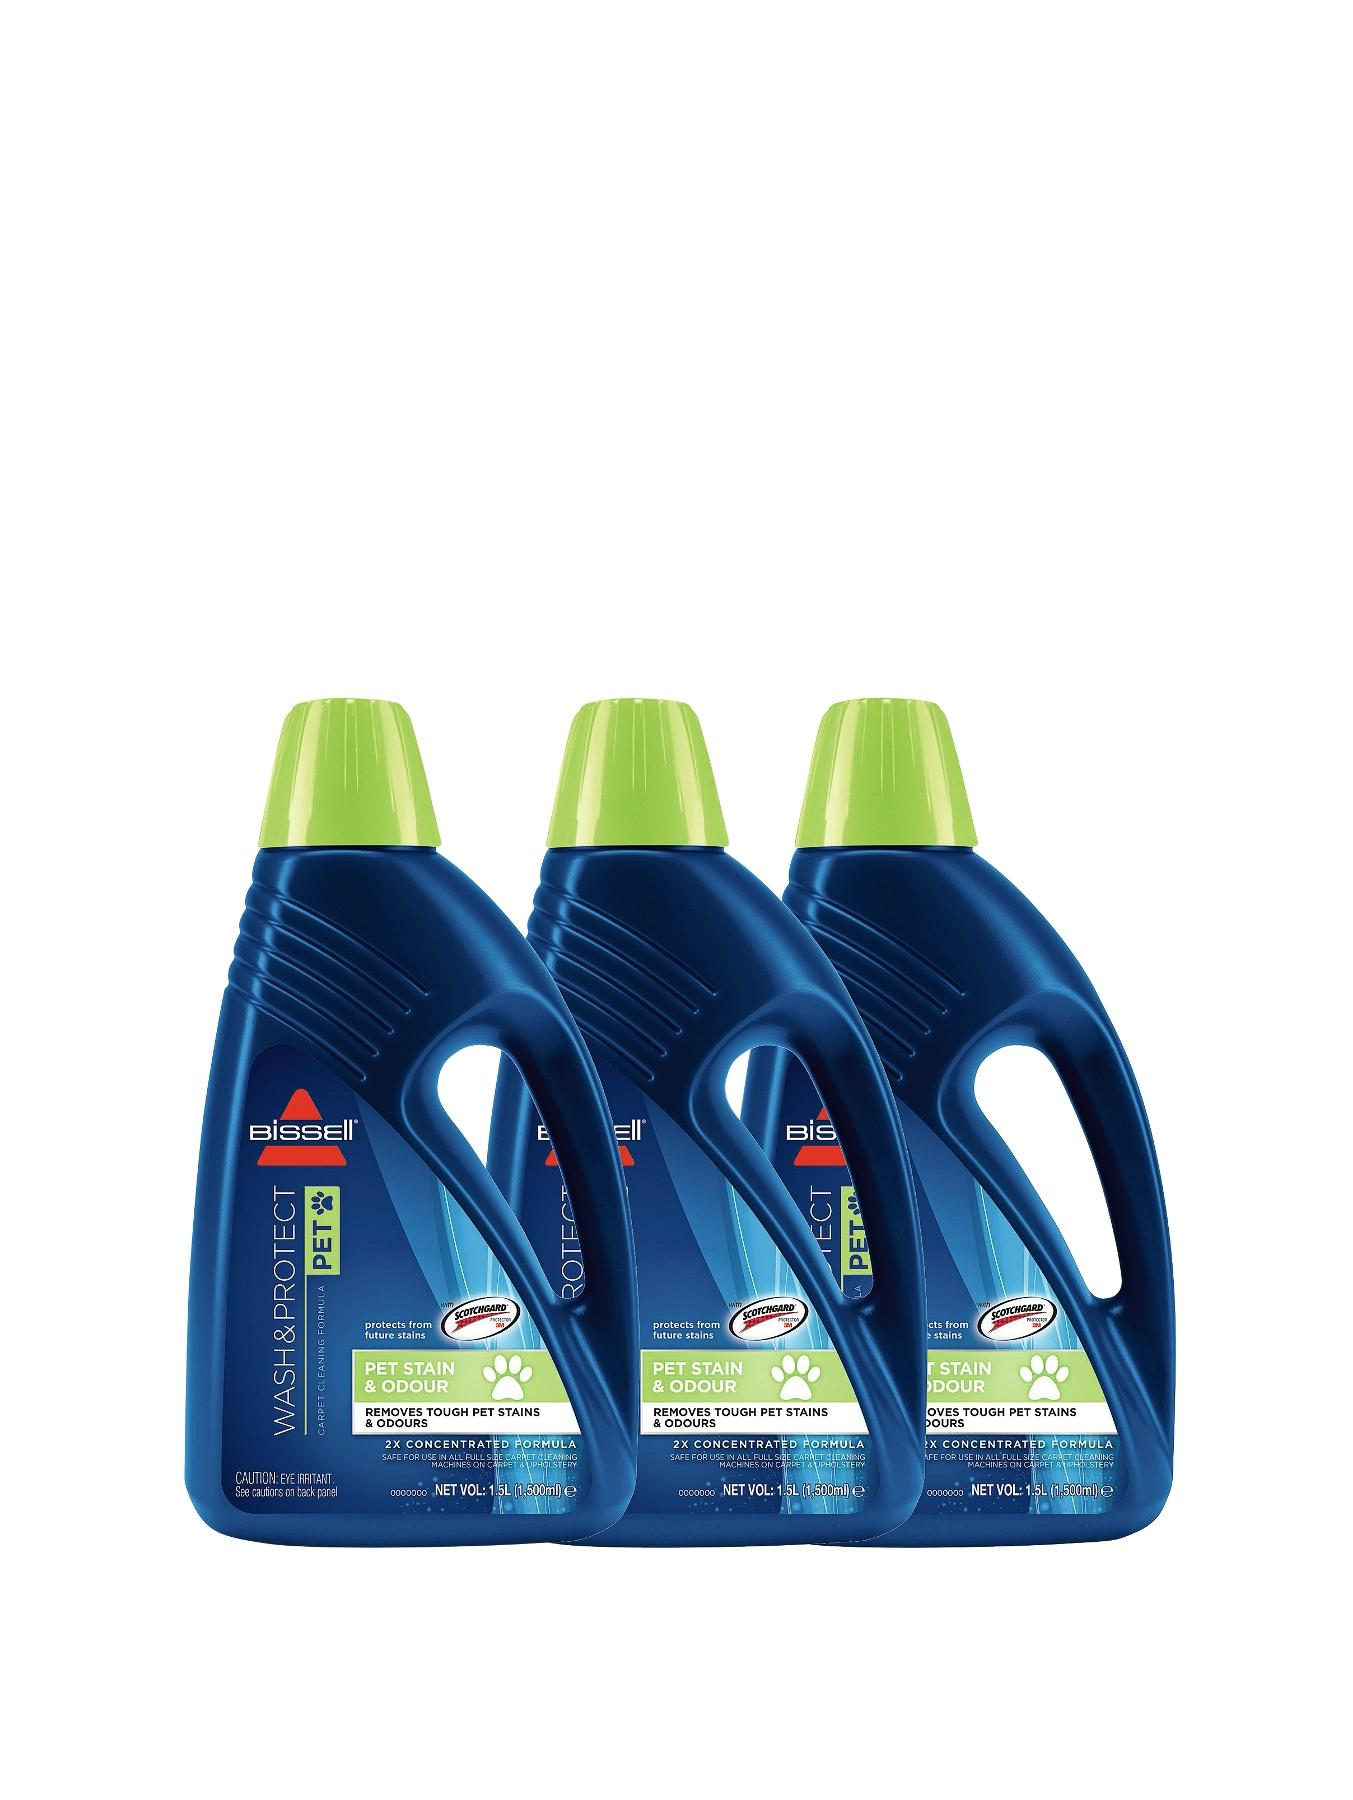 Pet Stain and Odour FormulaI (3 Pack)